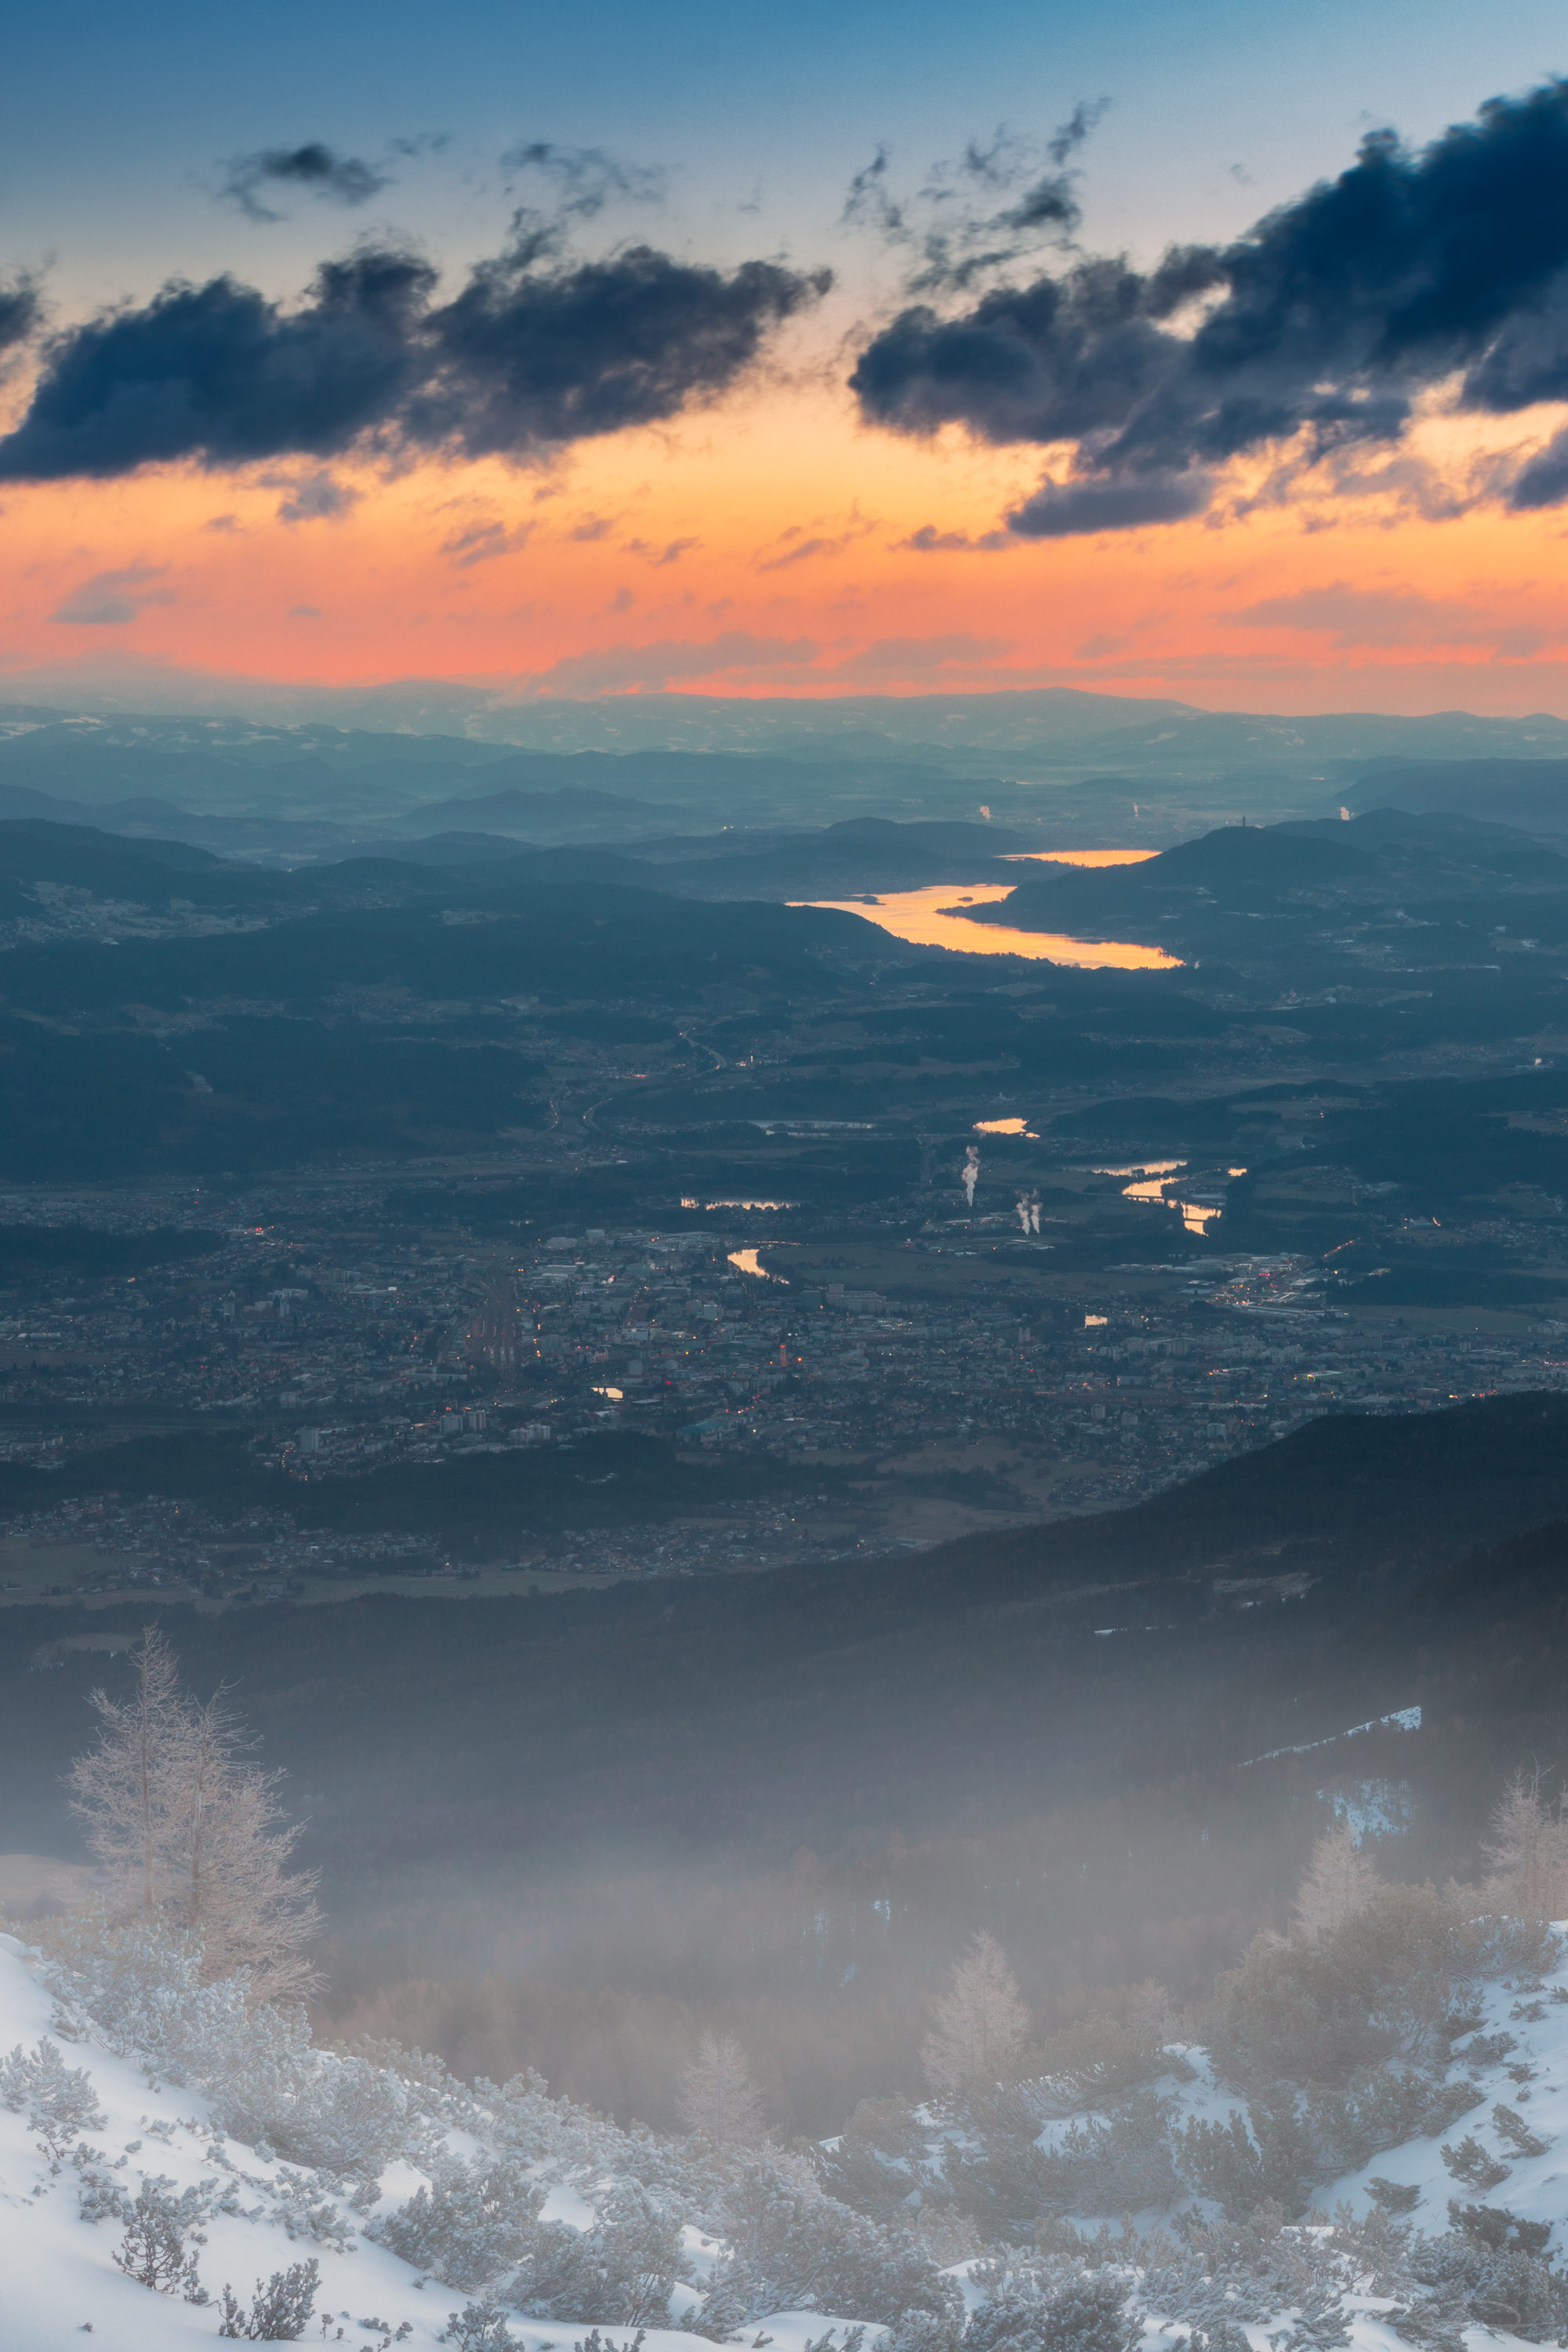 Sunrise View from the Dobratsch Mountain - City of Villach and Lake Woerthersee / Wörthersee